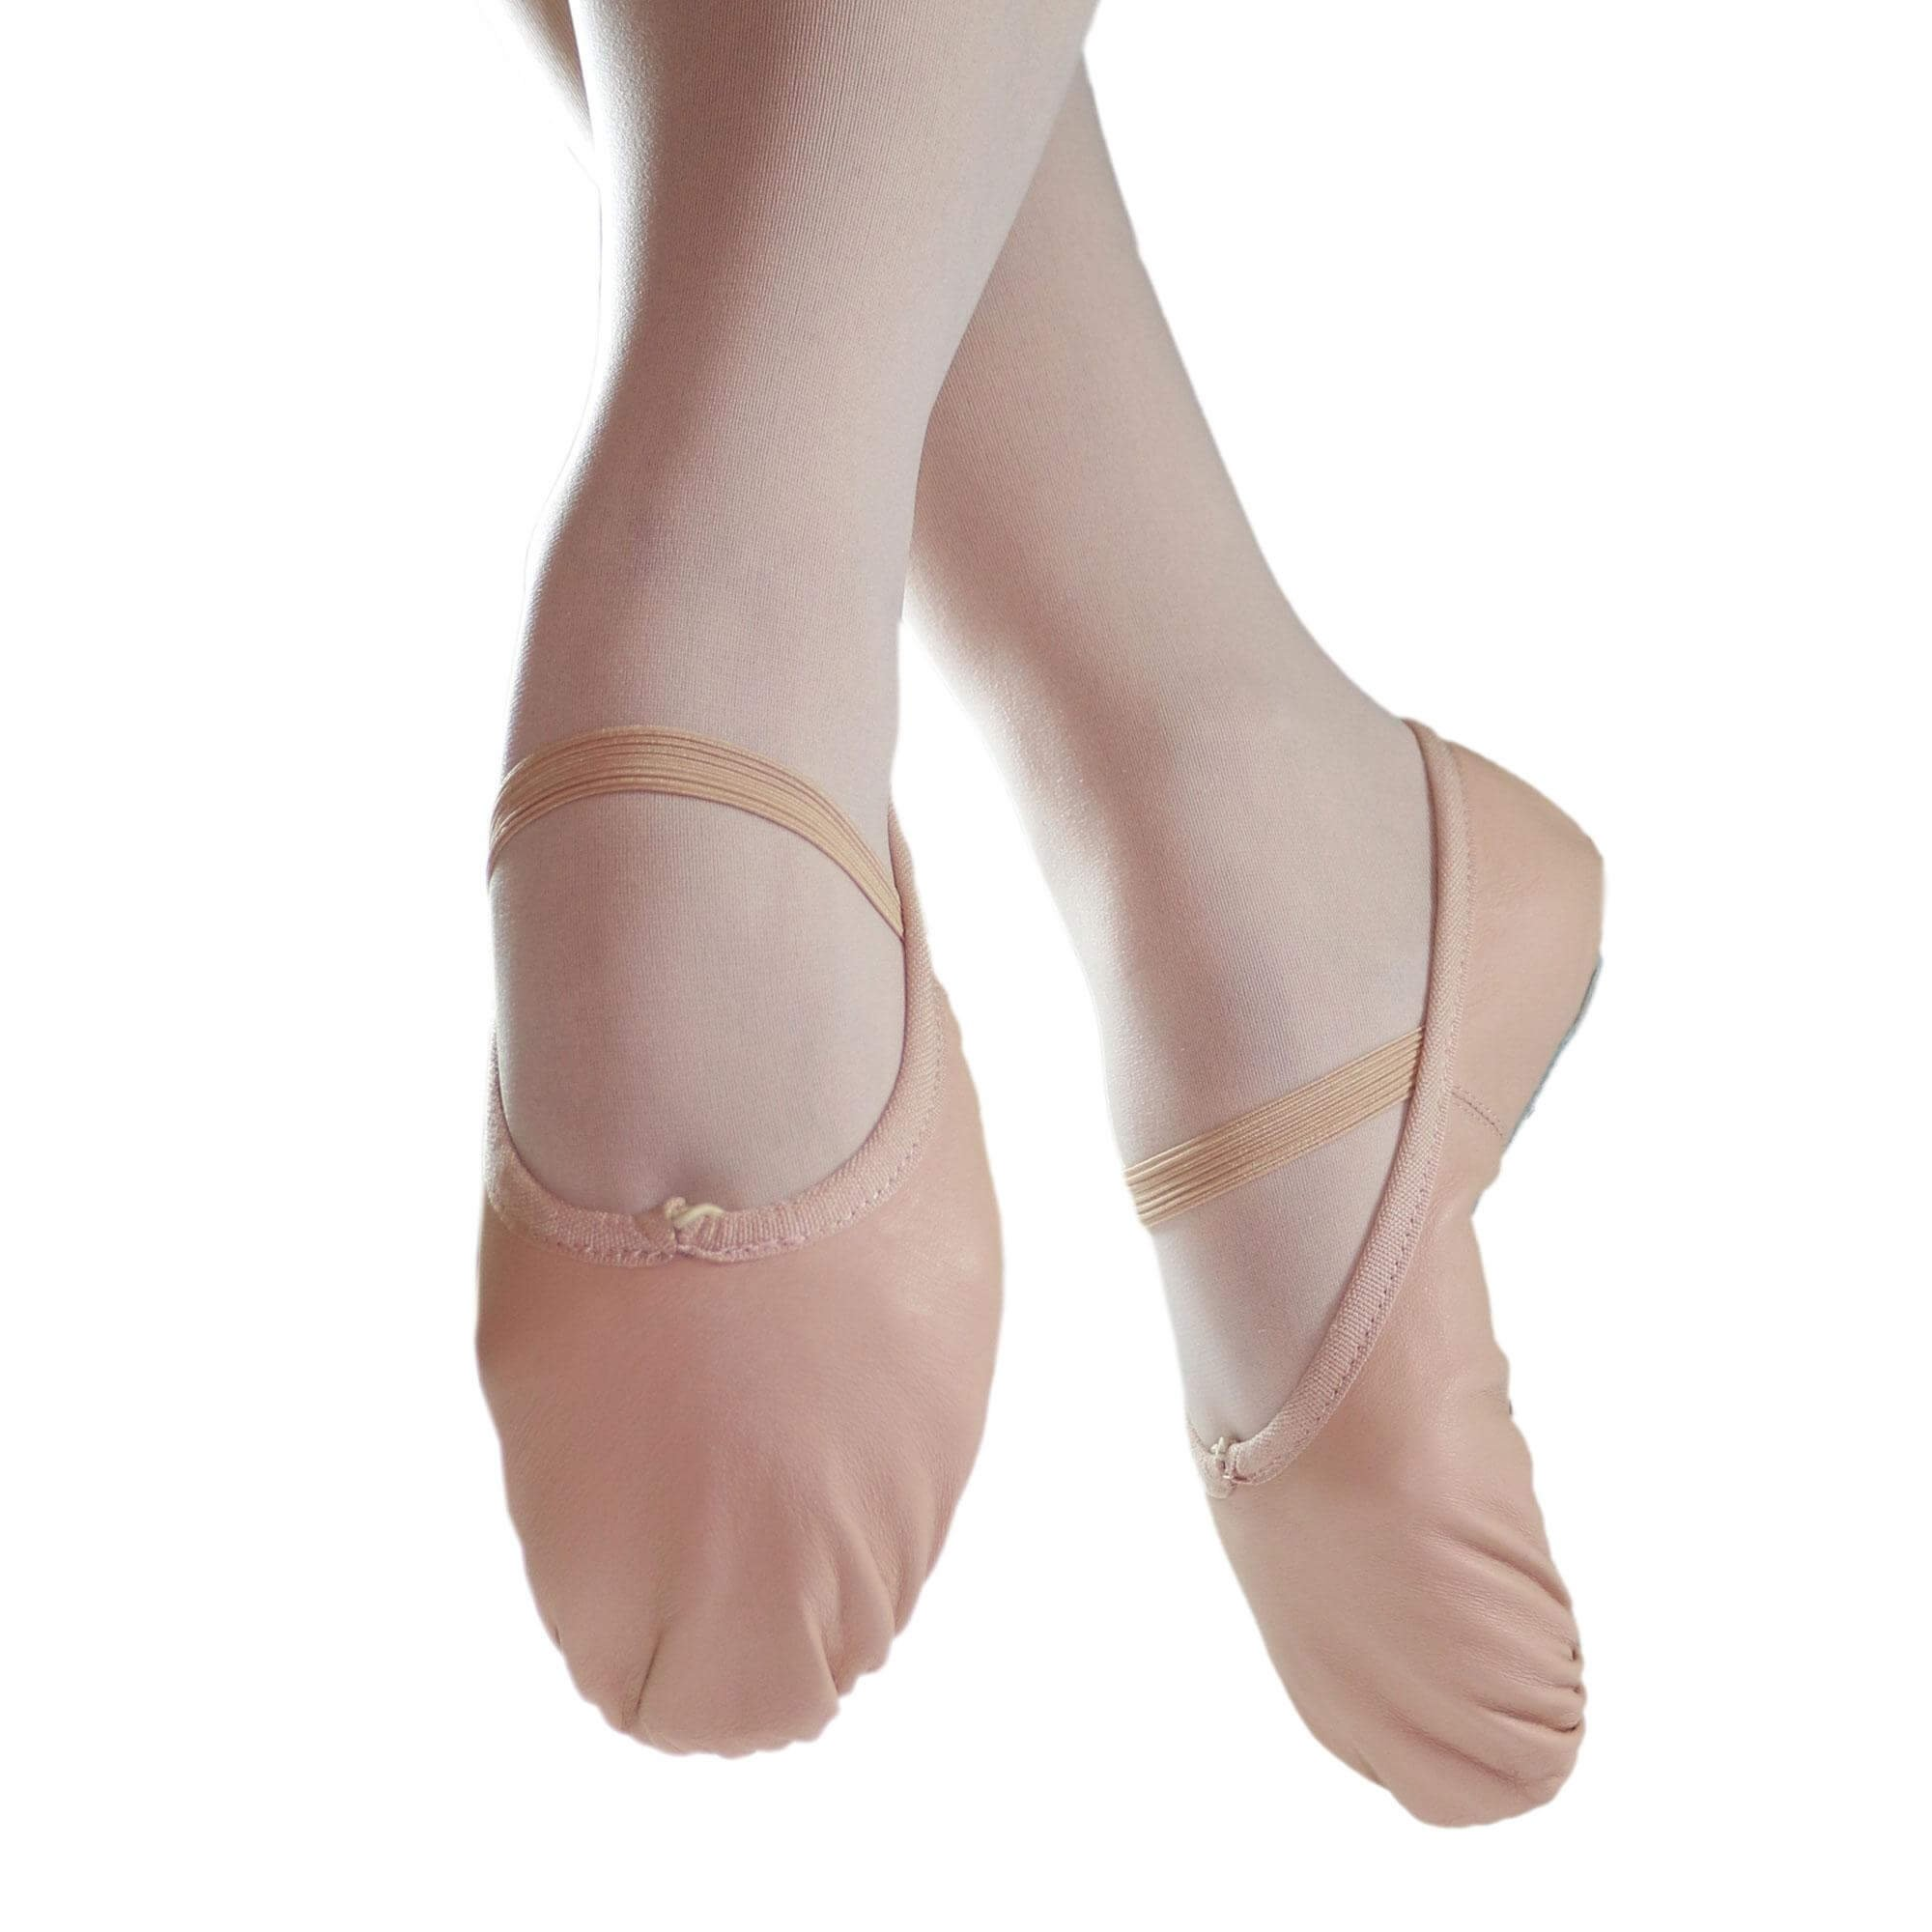 Danzcue Adult Full Sole Leather Pink Ballet Slipper 7.5 M US